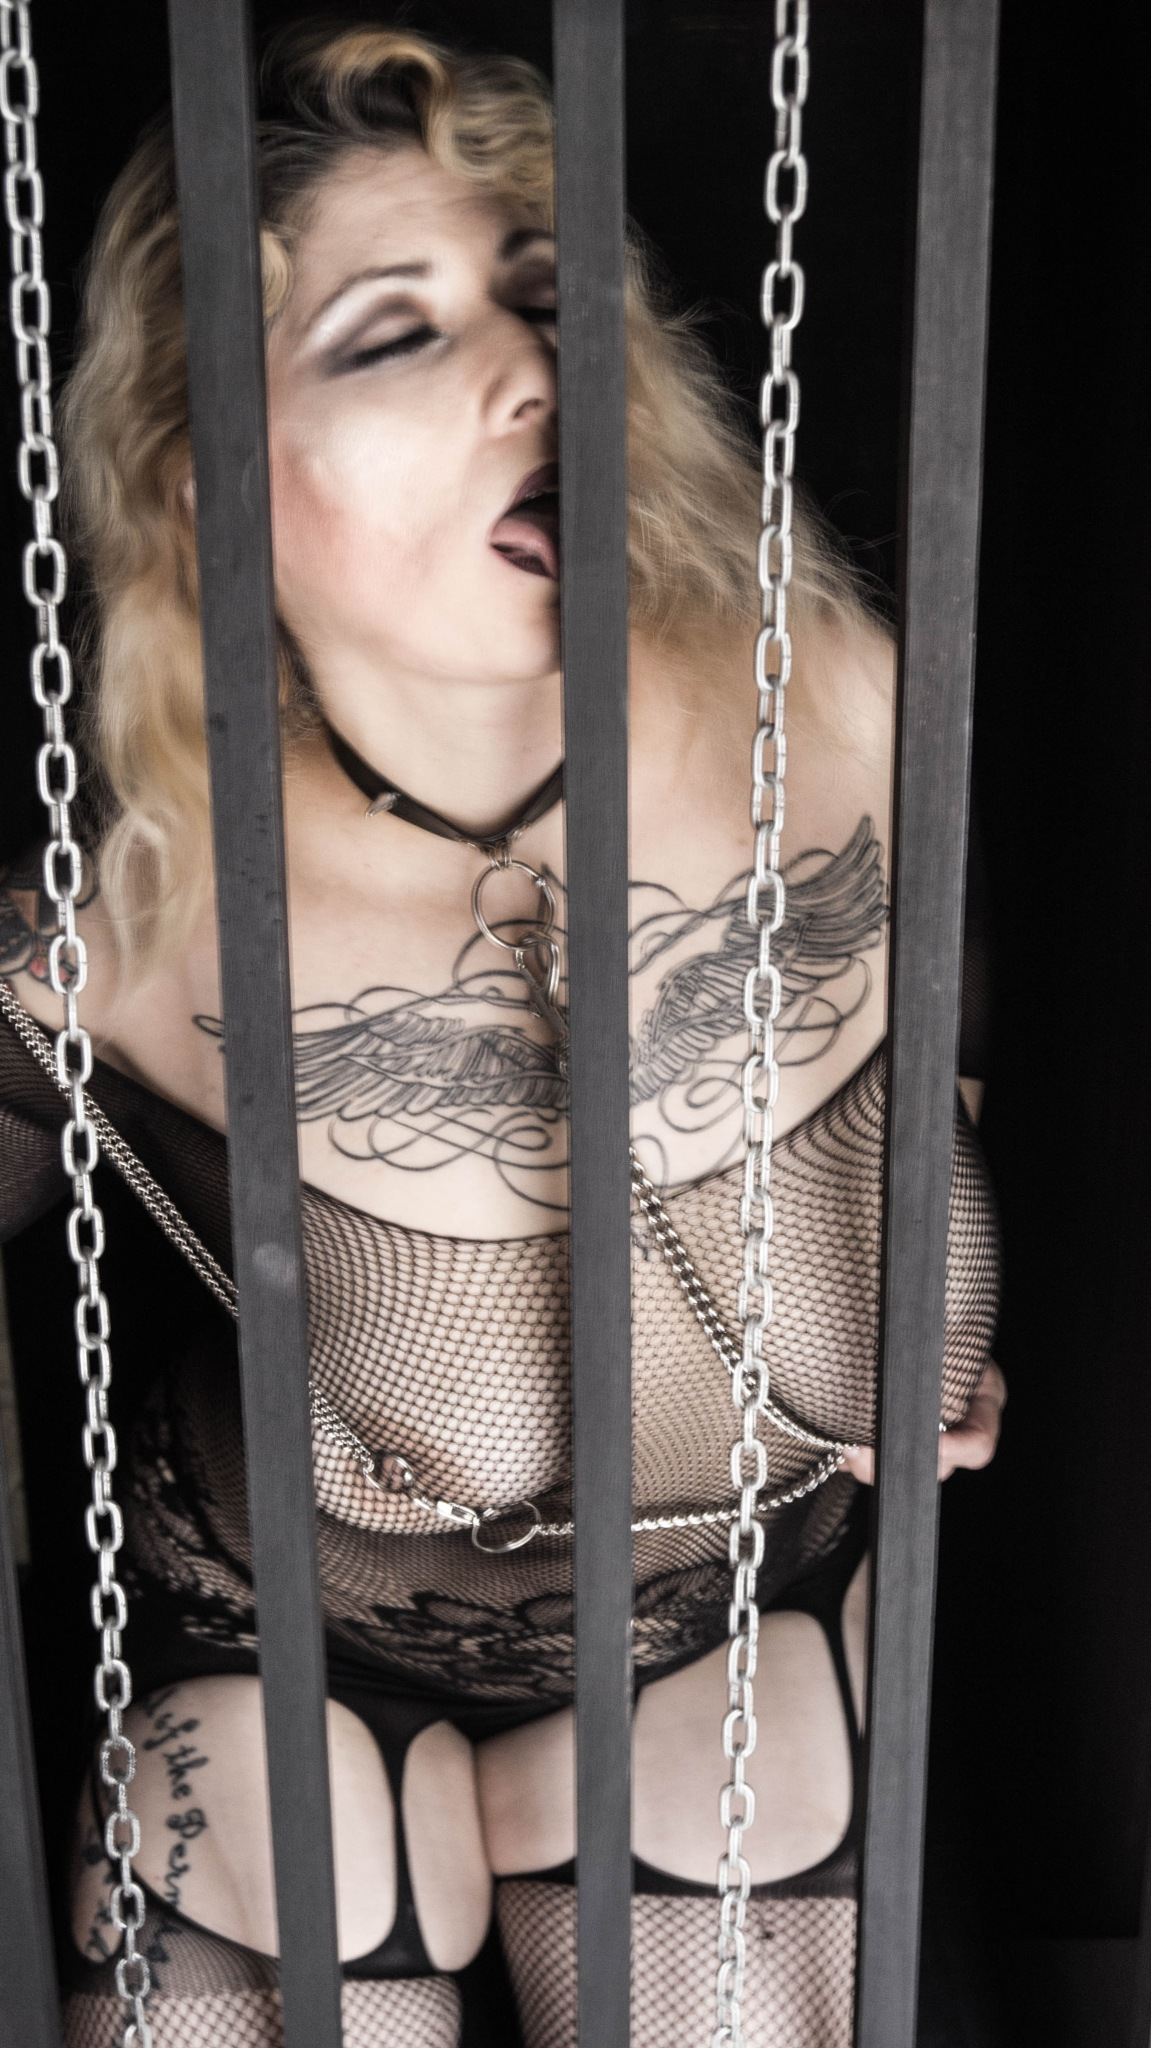 Submissive Slave by NemesisGoth